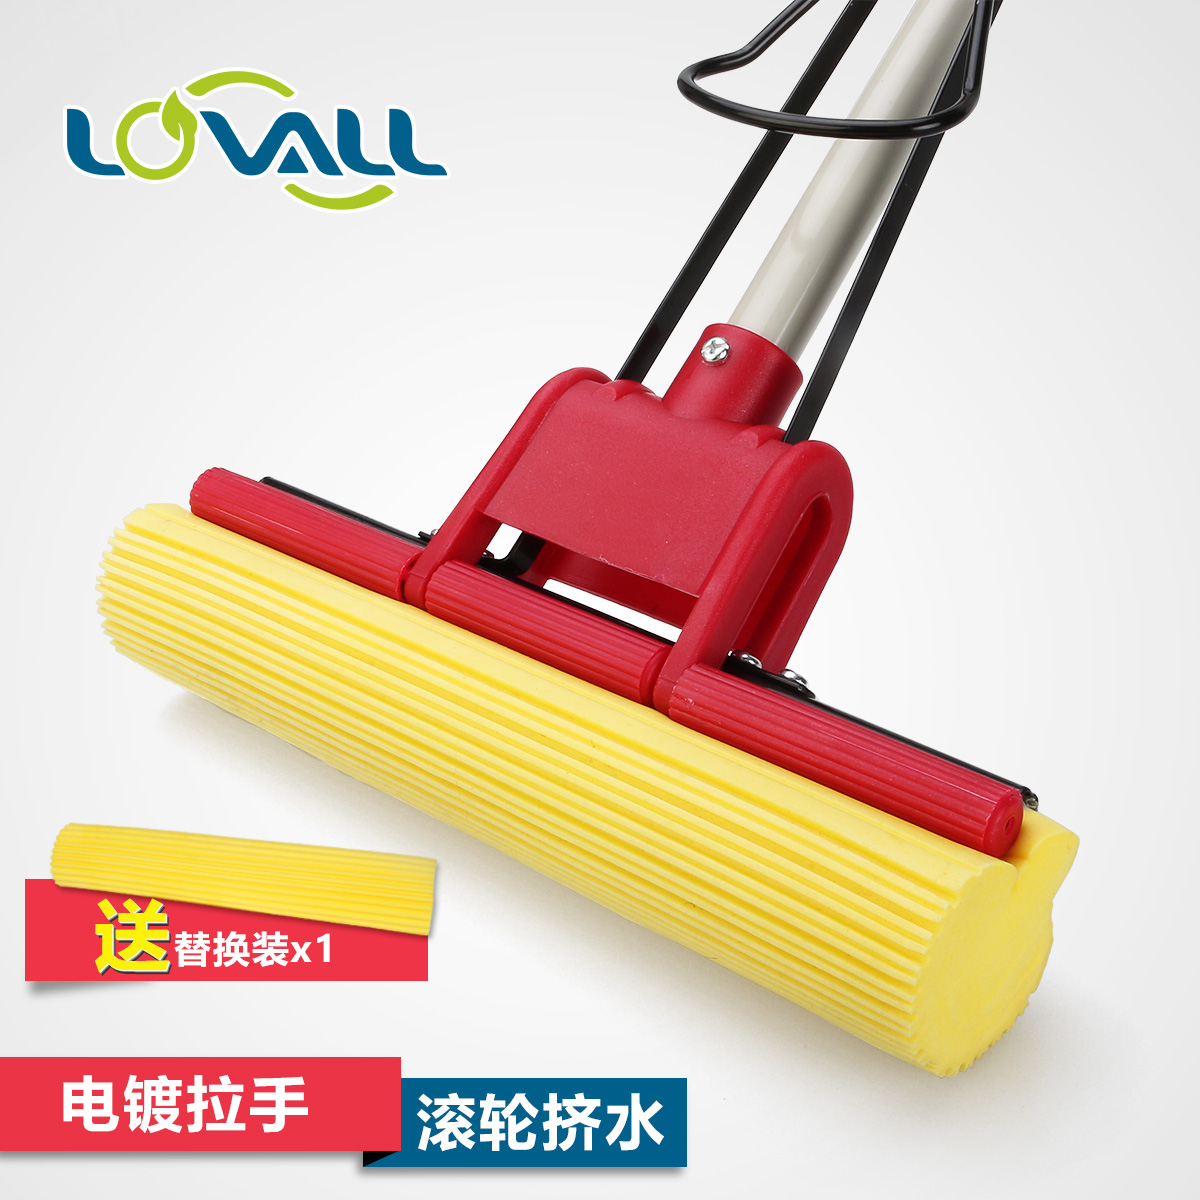 Leyvaux glue cotton absorbent sponge mop cotton mop water absorbent sponge rollers squeeze glue cotton mop drag genuine special